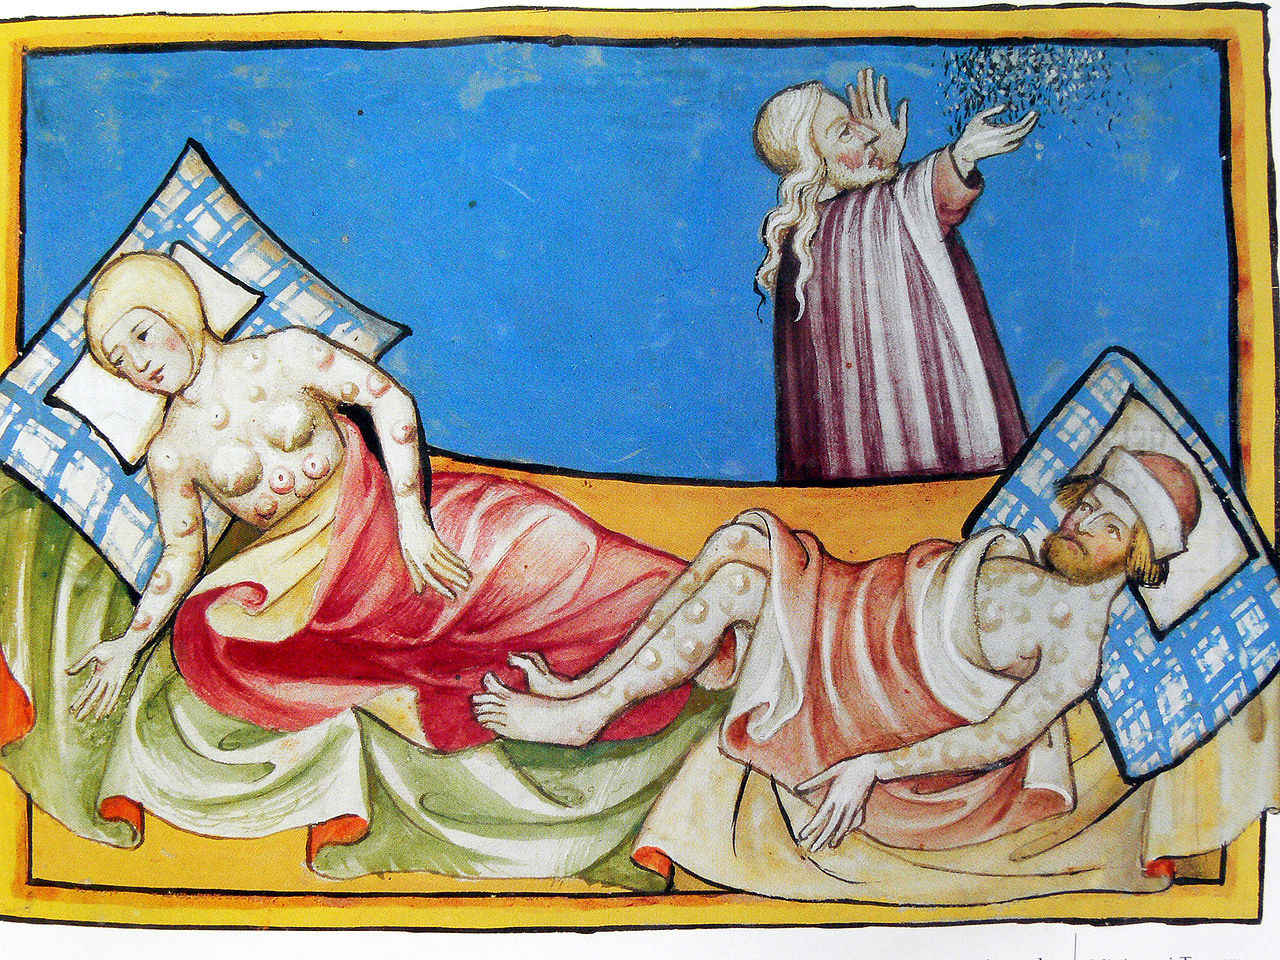 the genesis history and effects of the bubonic plague